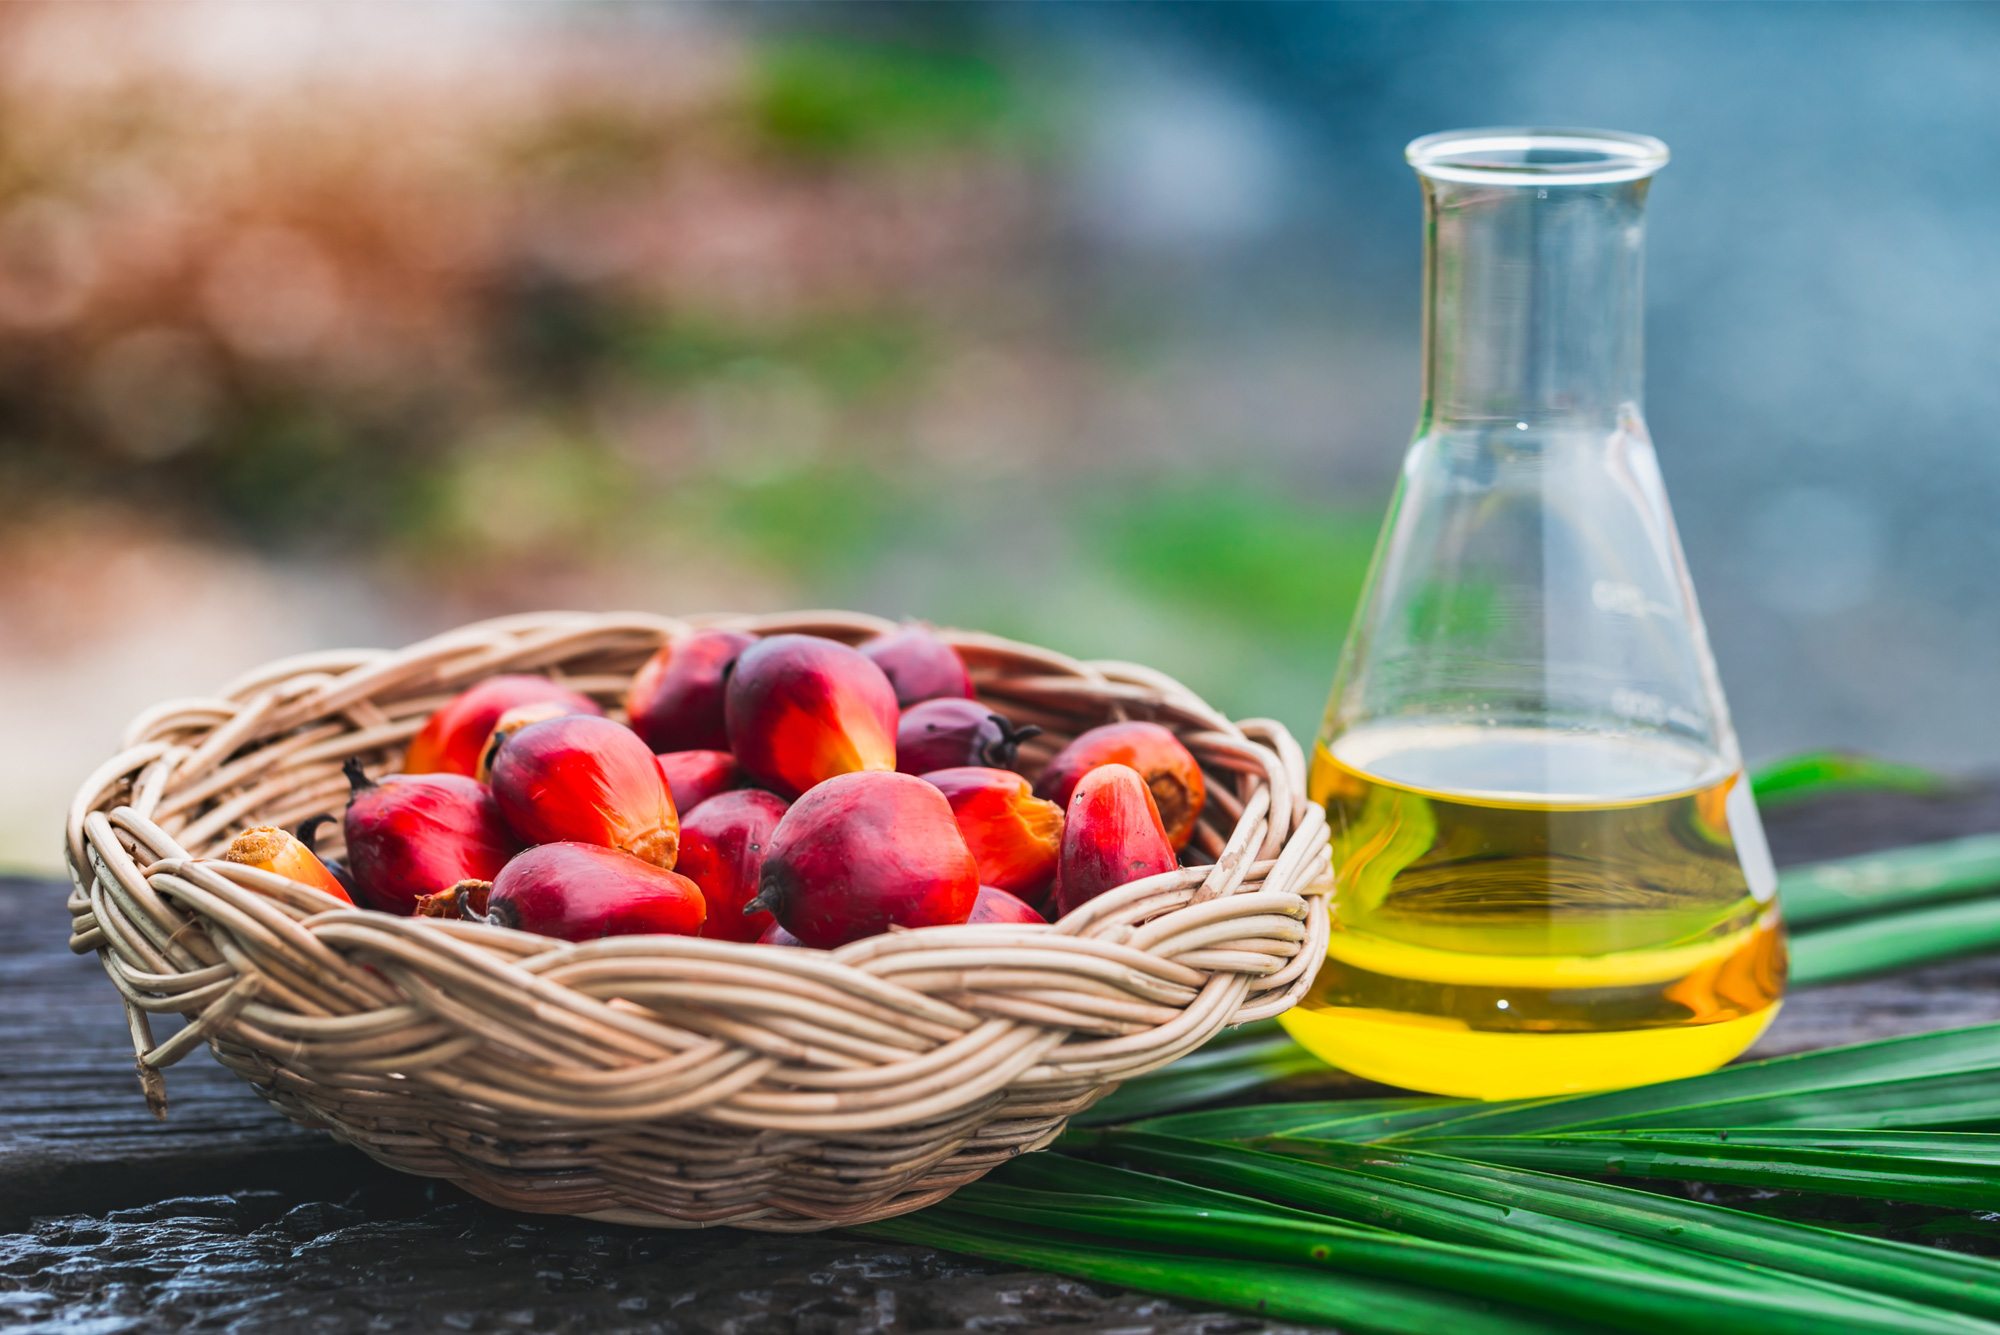 l olio di palma e nocivo per la salute   grand chef evolution